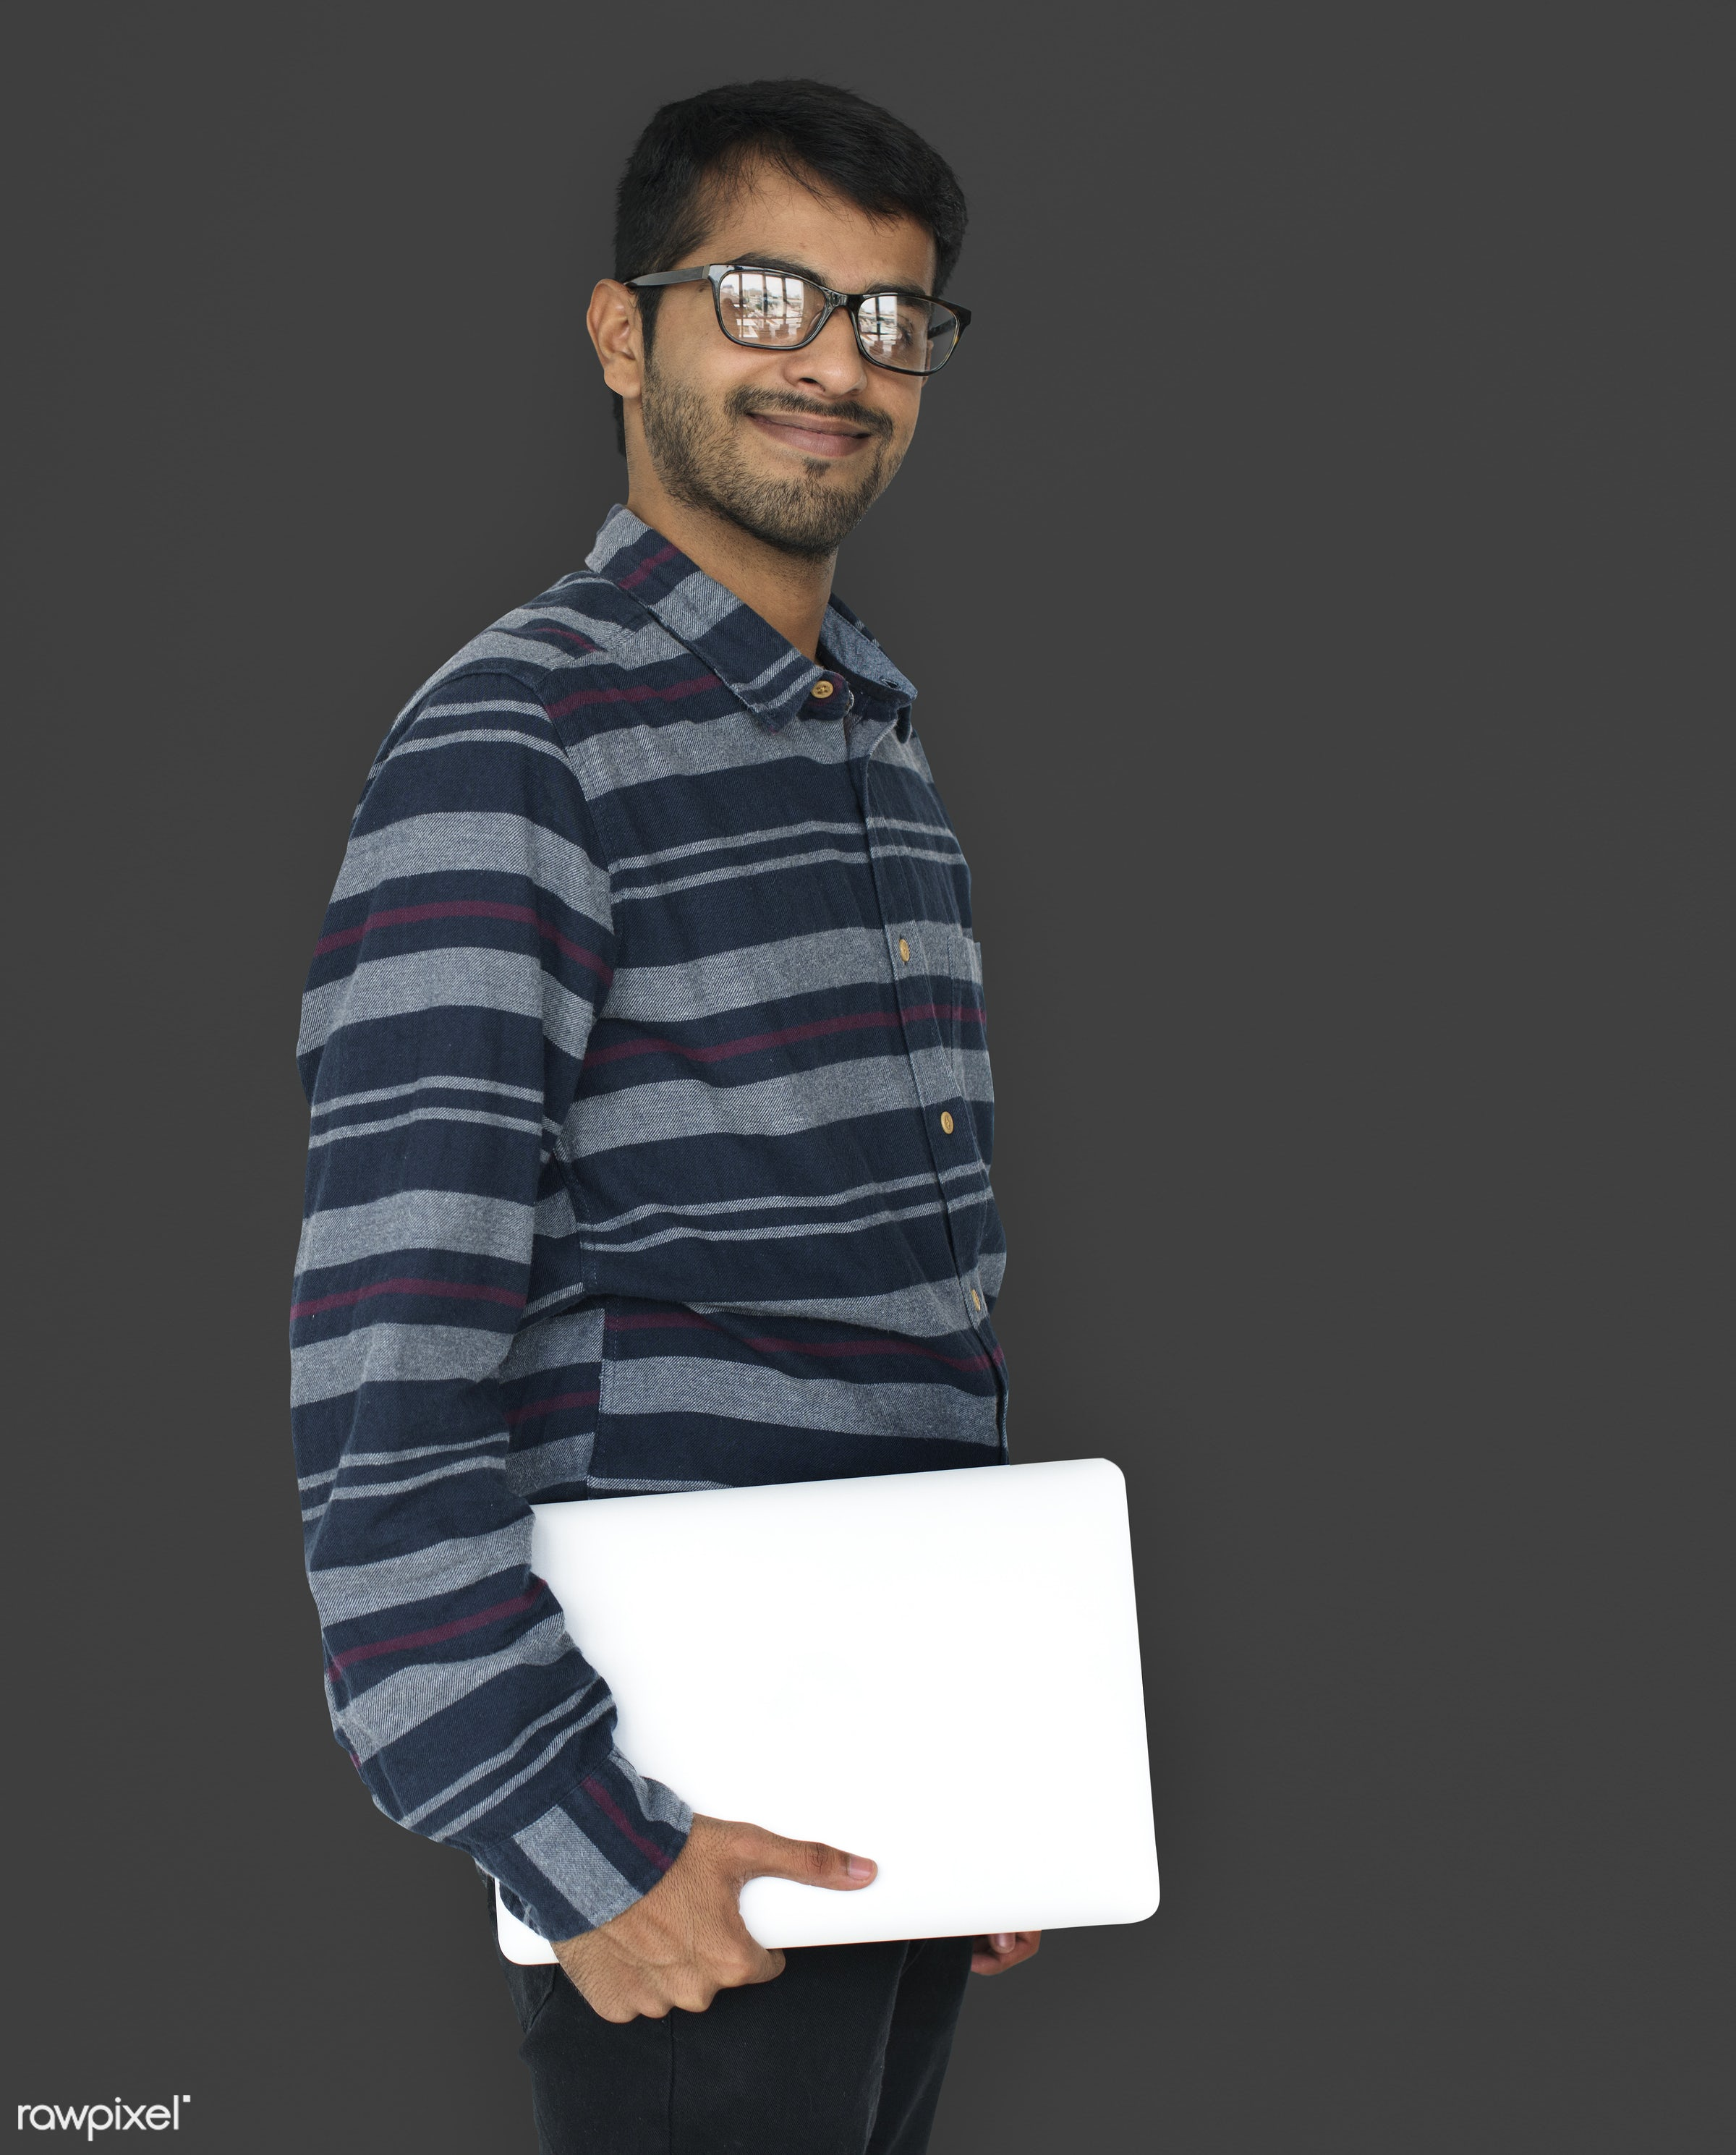 expression, person, using, white collar worker, people, laptop, working, isolated, connection, emotion, techie, internet,...